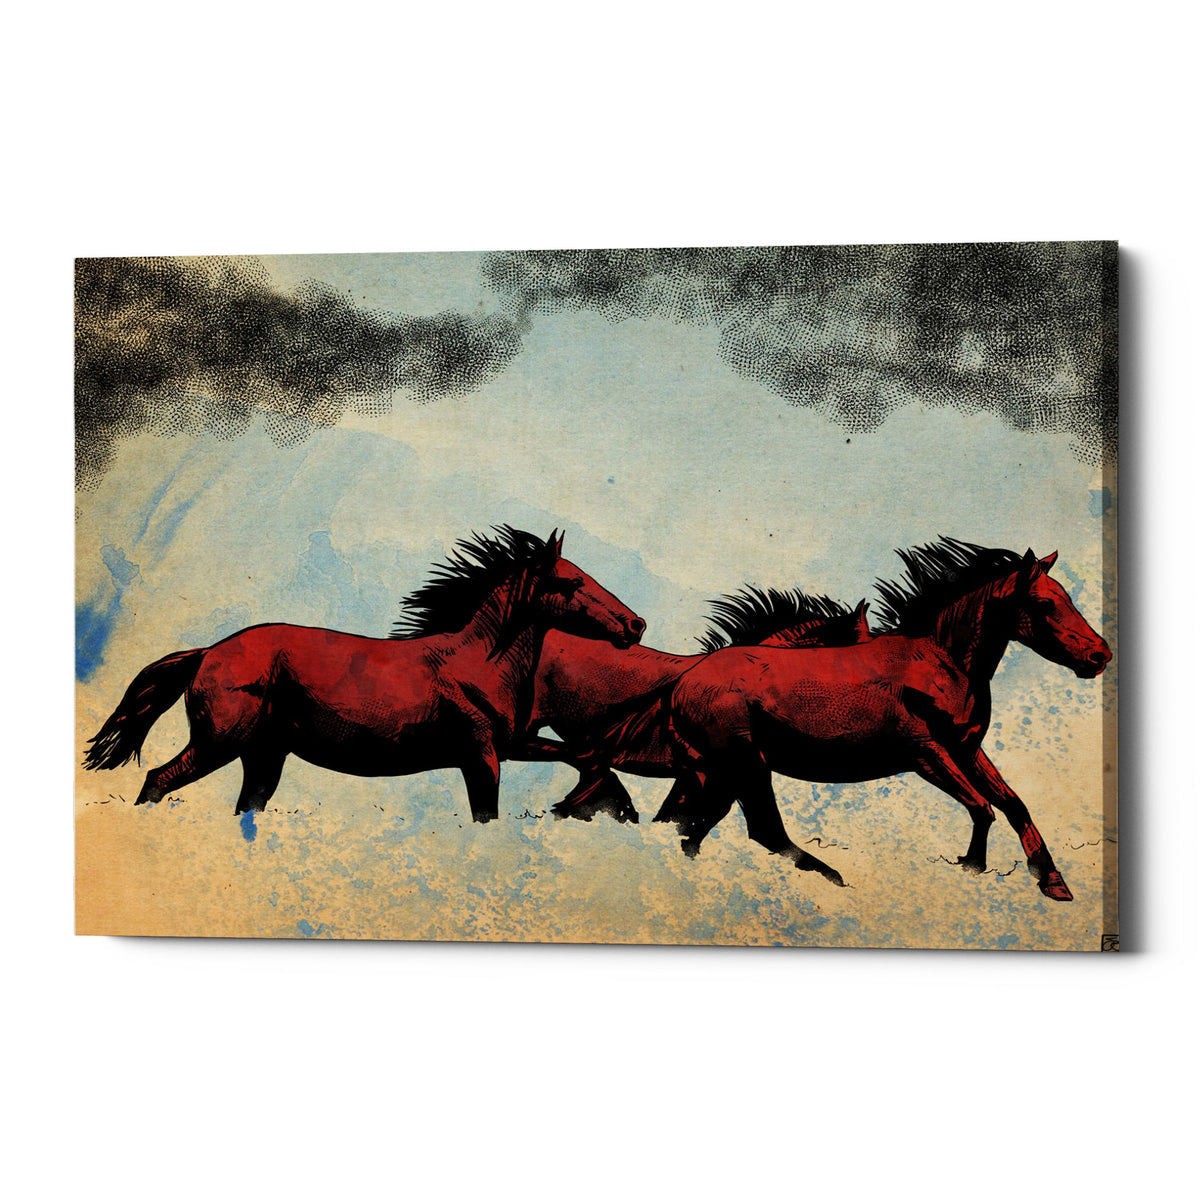 "Epic Graffiti ""Horses"" by Giuseppe Cristiano, Giclee Canvas Wall Art"